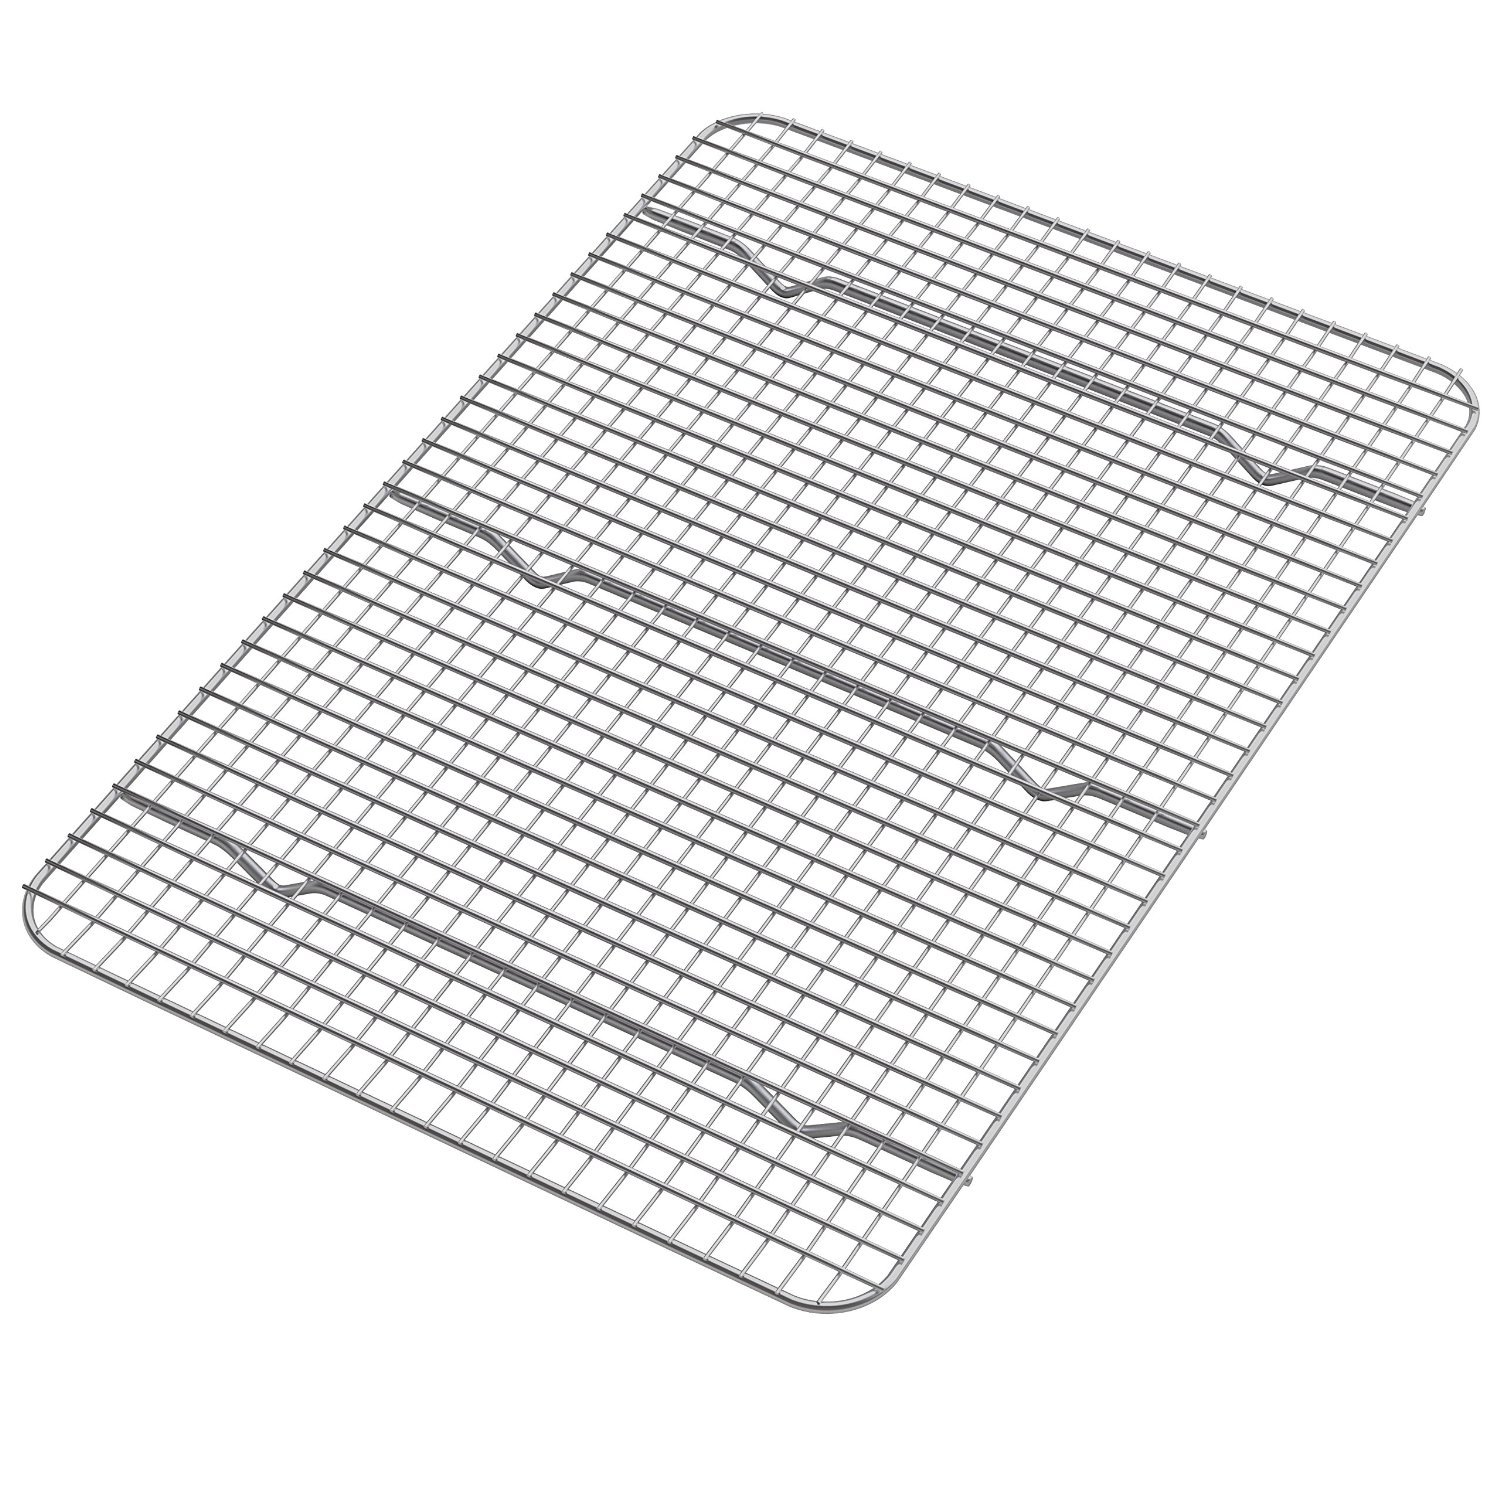 CIA 23304 Masters Collection 12 Inch x 17 Inch Wire Cooling Rack Chrome Plate Steel